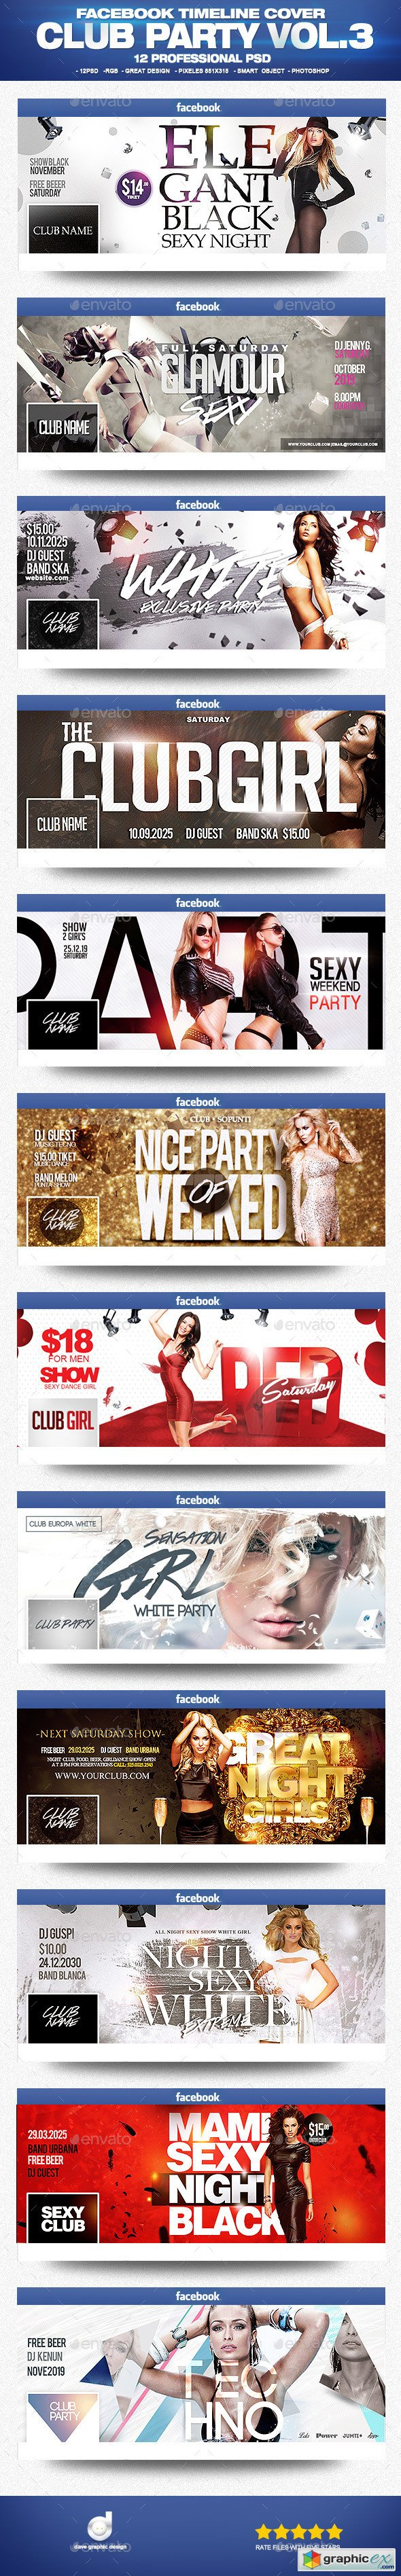 Facebook Timeline Cover Package Club Party Vol.3